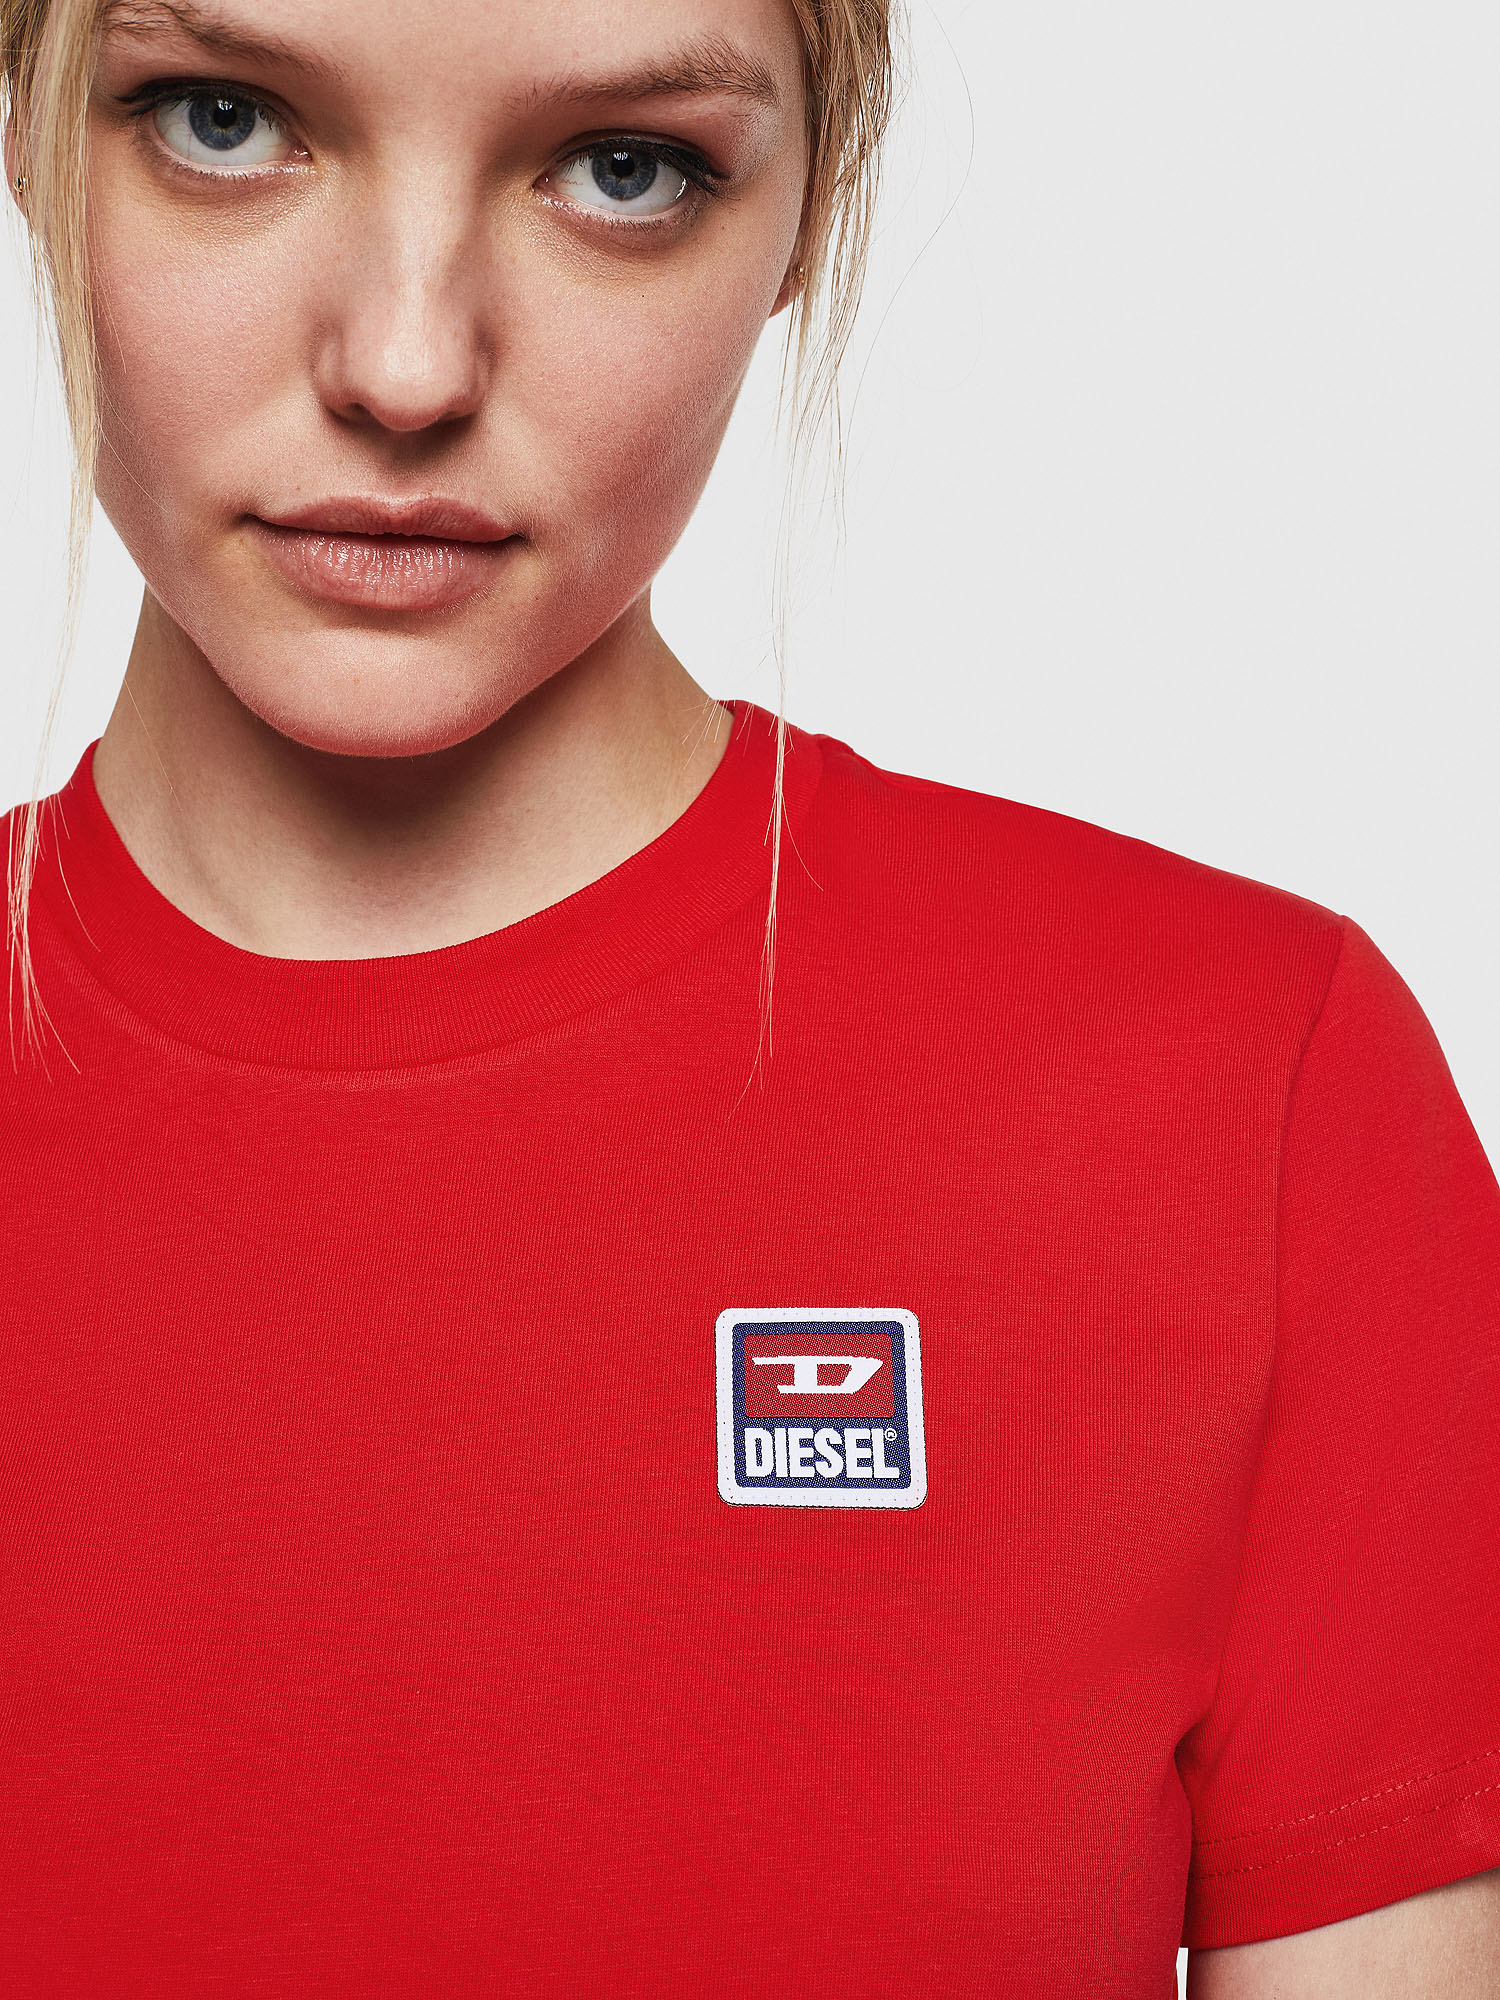 Diesel - T-SILY-ZE,  - T-Shirts - Image 5